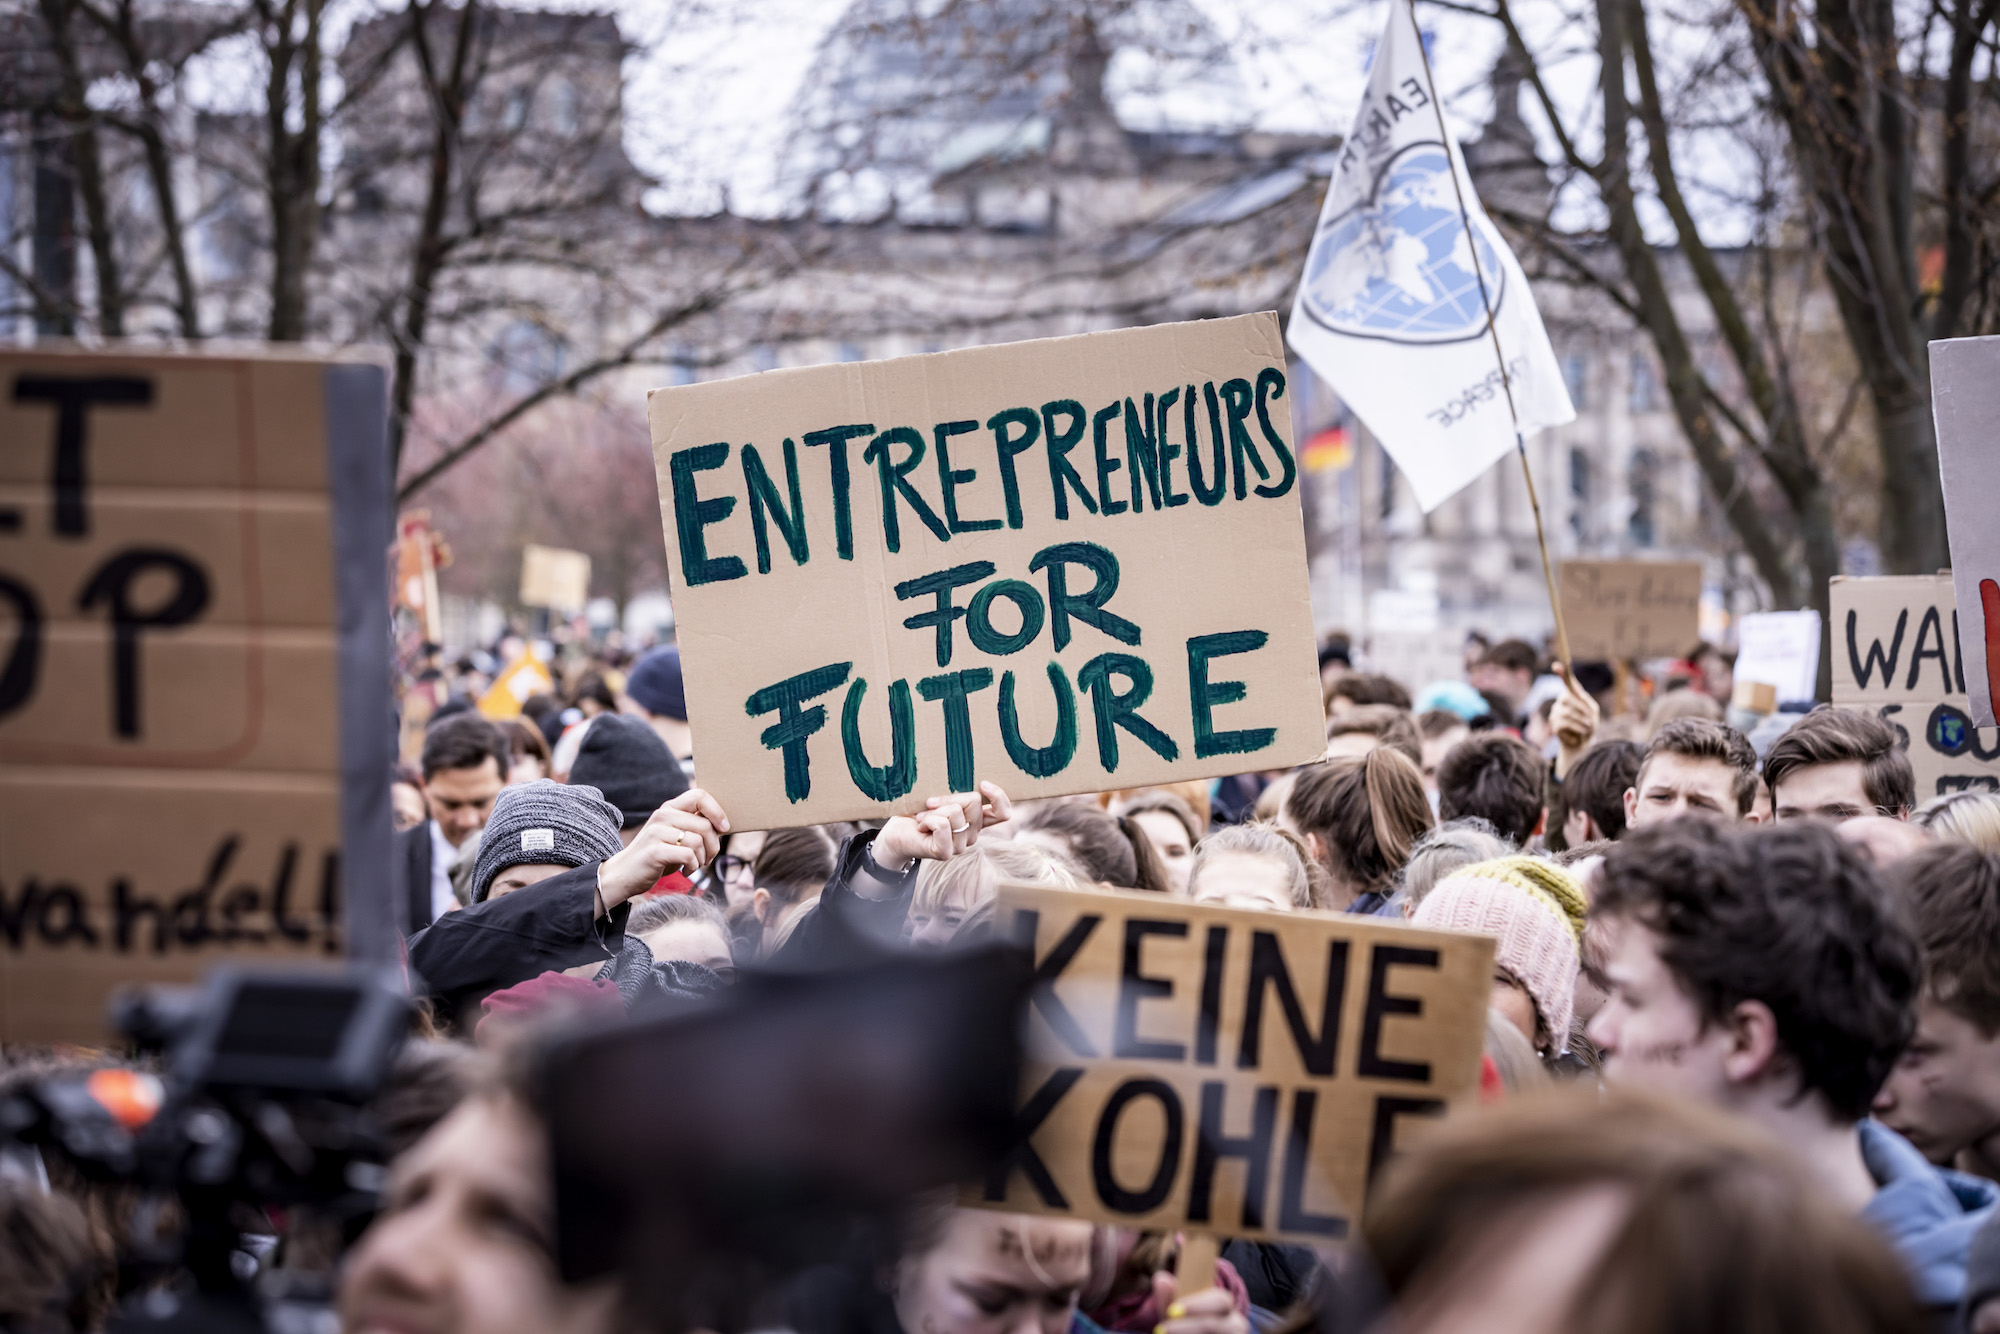 Globale Klimastreiks - Entrepreneurs For Future. Bild: copy Entrepreneurs For Future